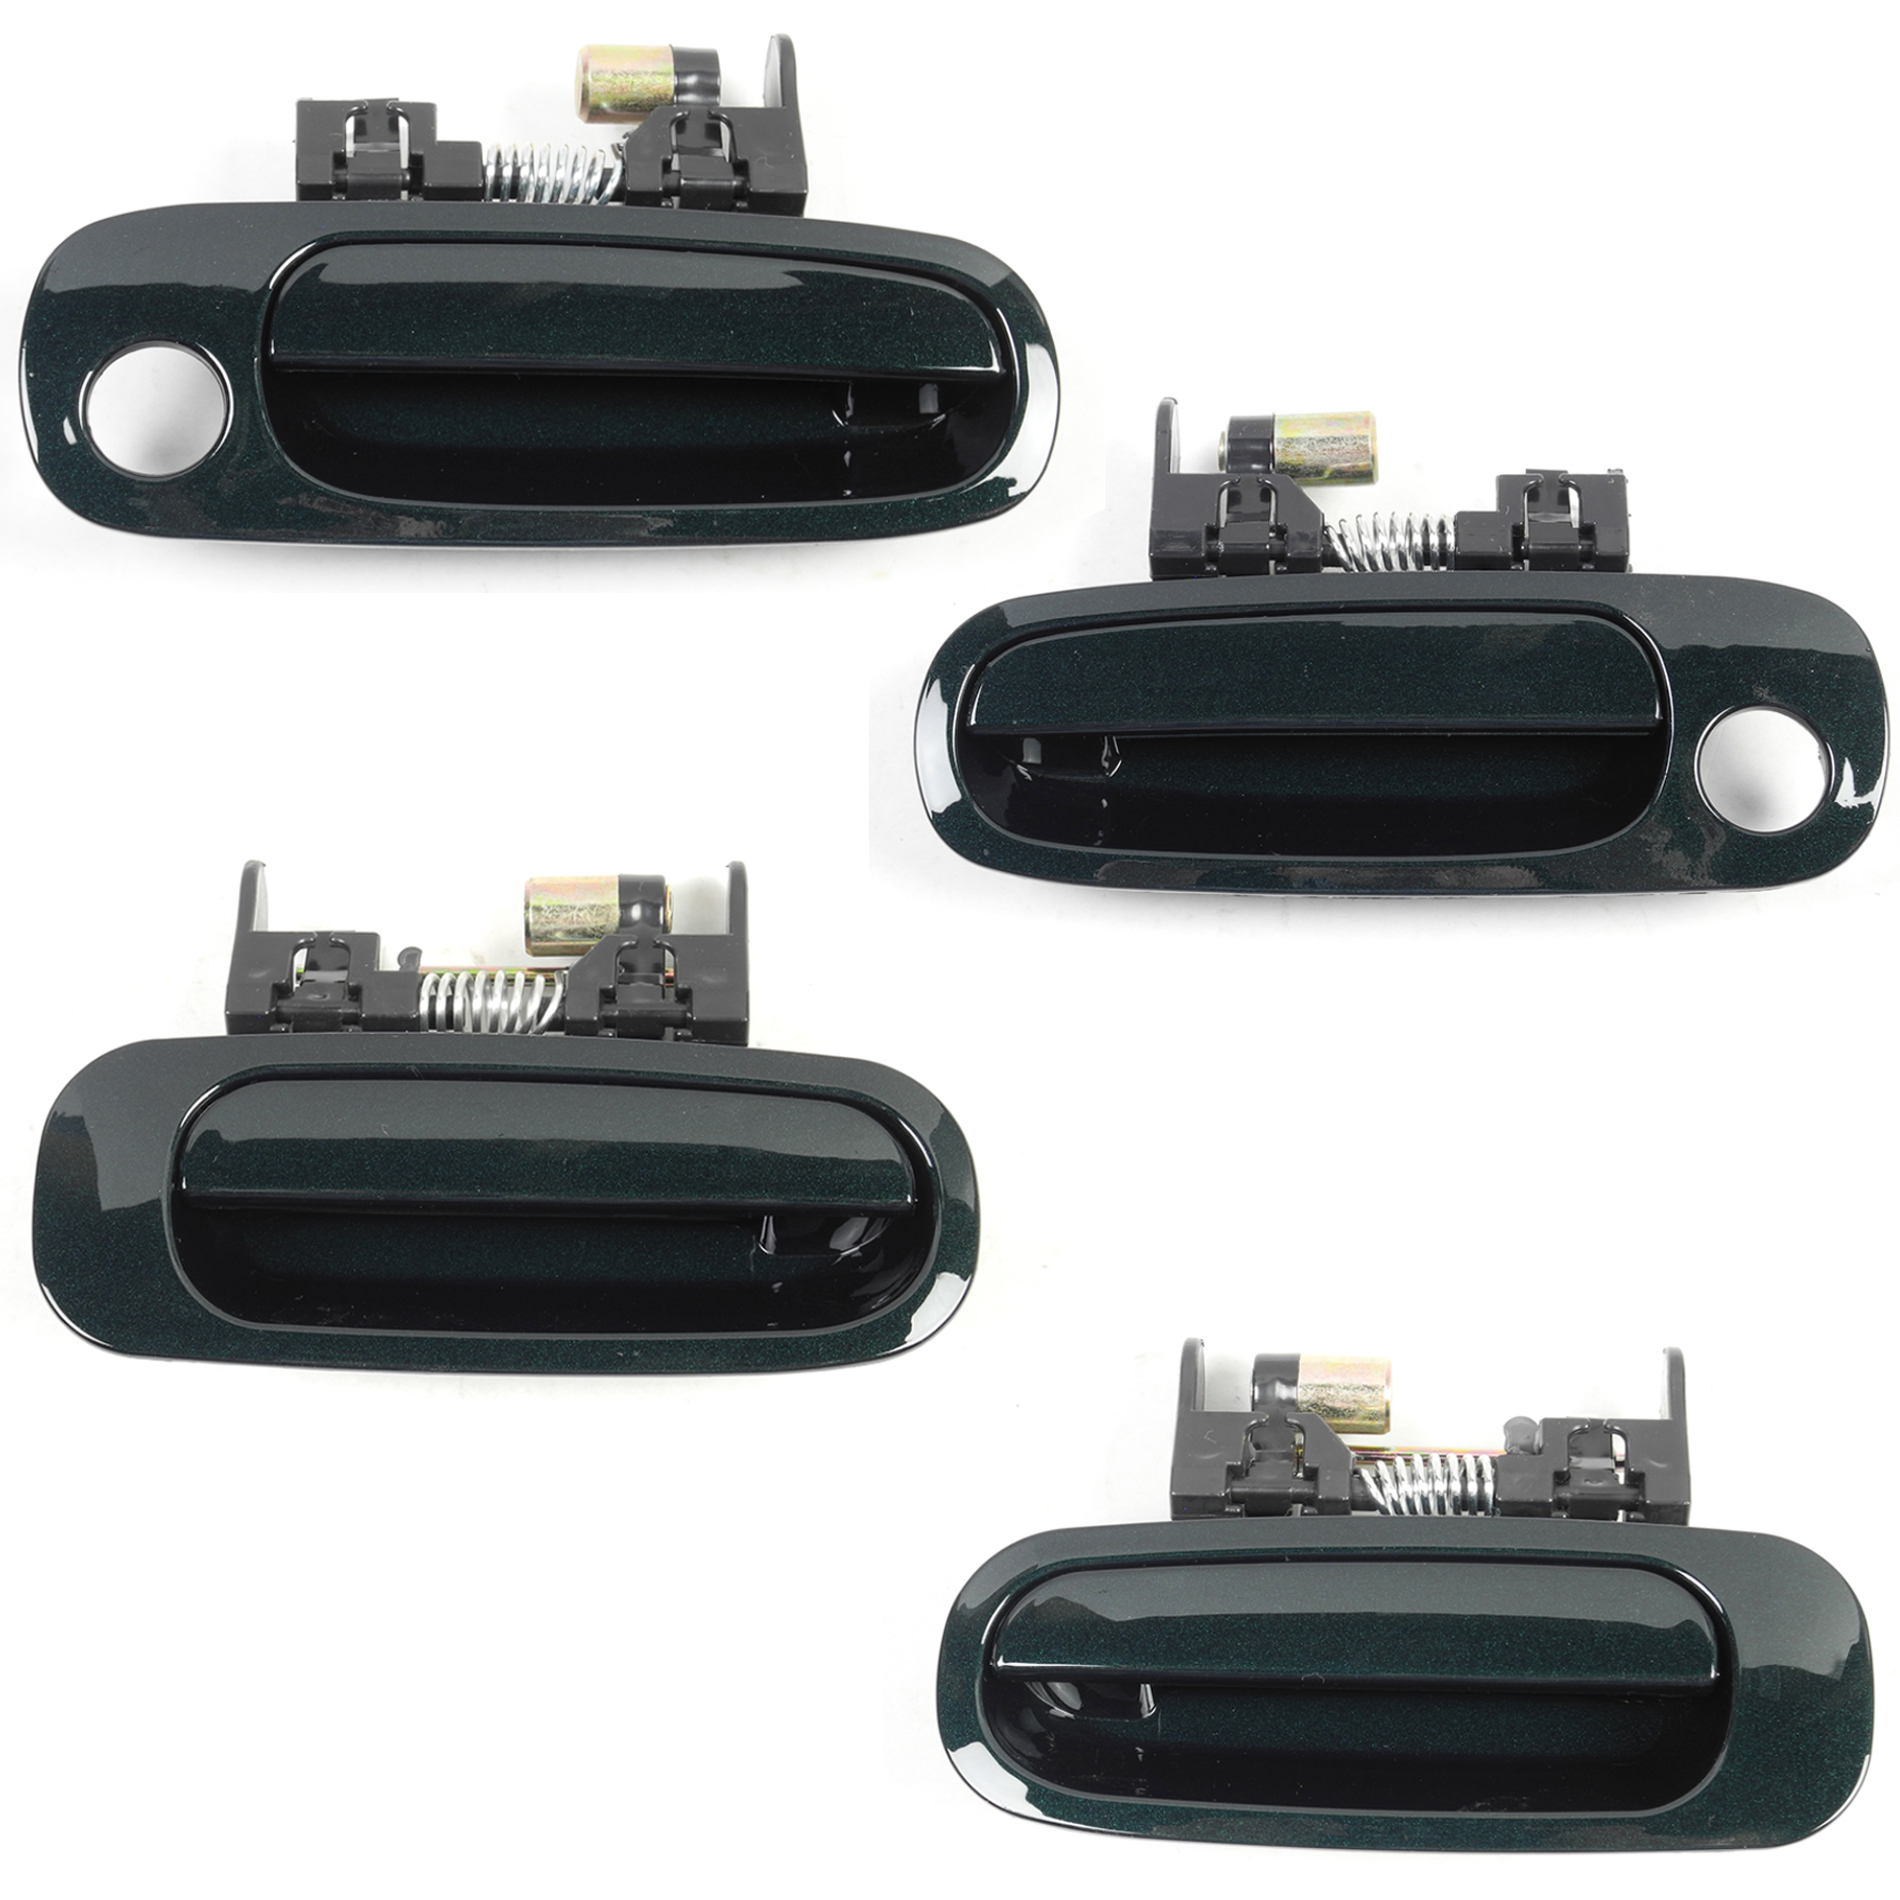 hight resolution of details about for 98 02 toyota corolla chevrolet prizm outside door handle f r green 6r1 ds318